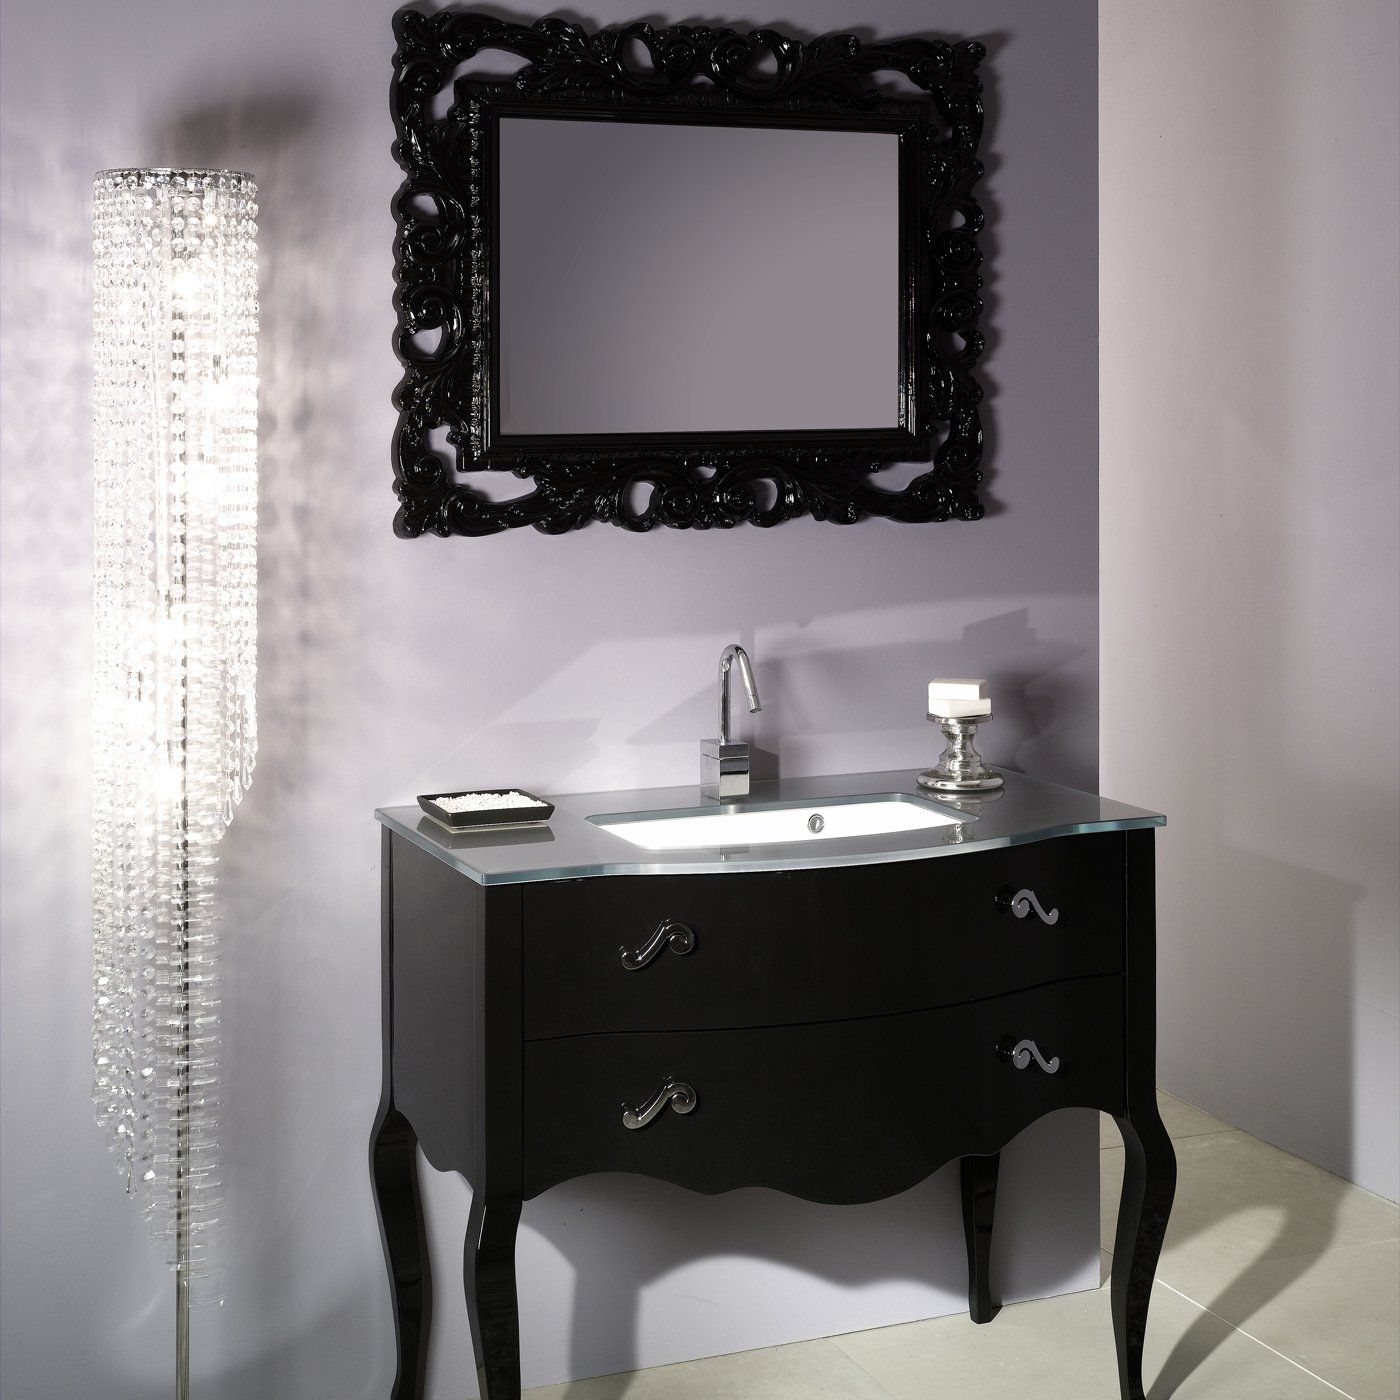 Nameeks Set NBGlossy Black Boheme Bathroom Vanity Glossy Black - Vintage wall mount bathroom sink for bathroom decor ideas